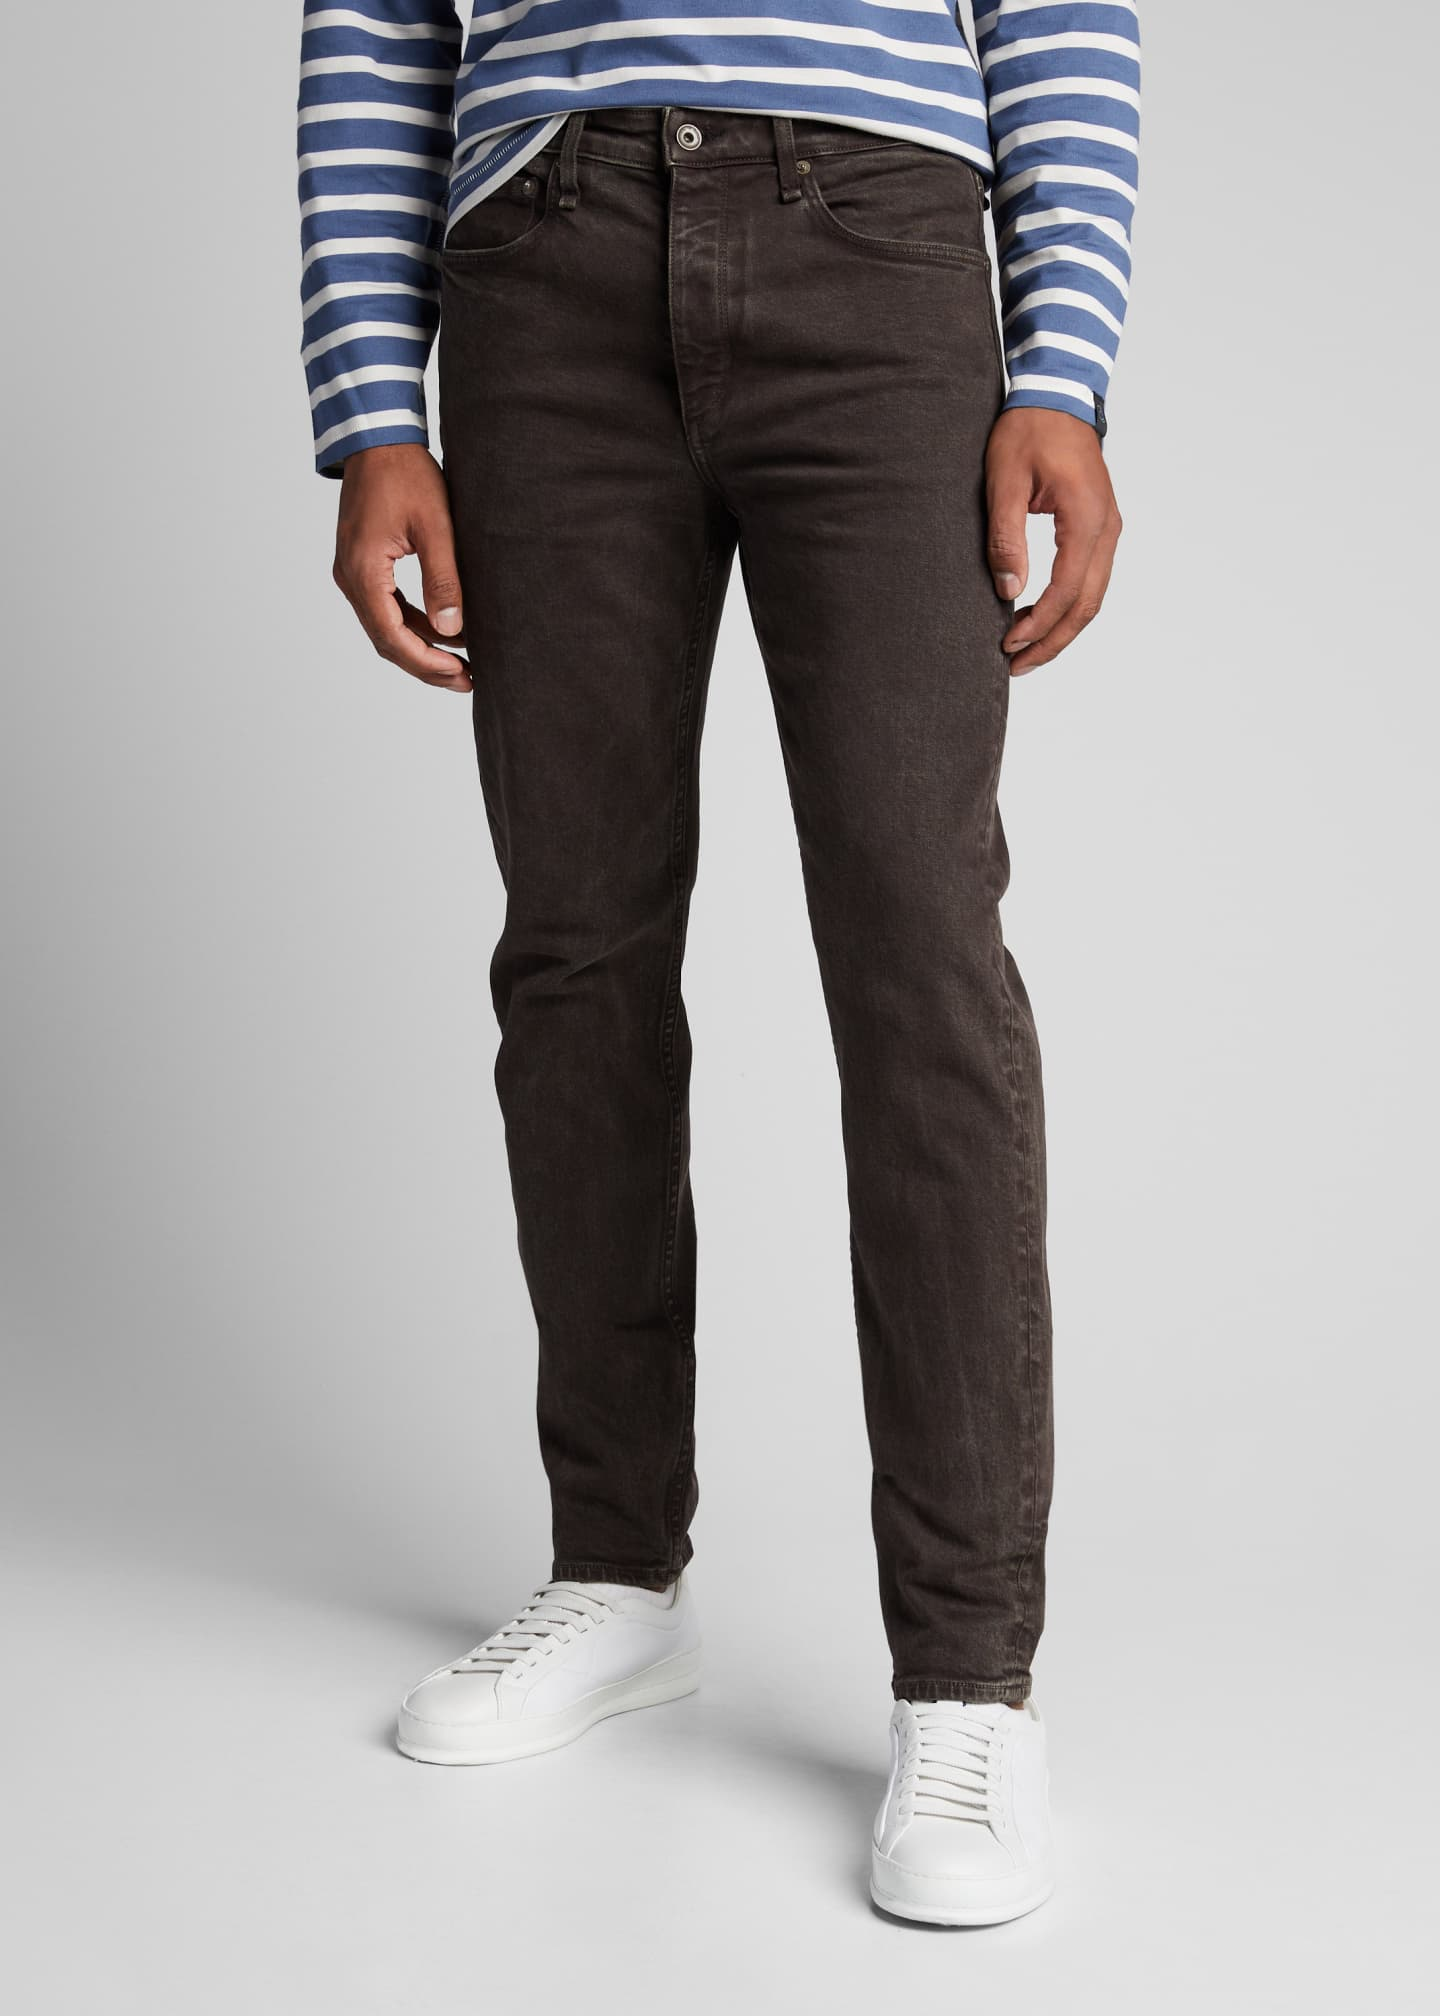 Image 3 of 5: Men's Fit 2 Mid-Rise Stone-Washed Jeans